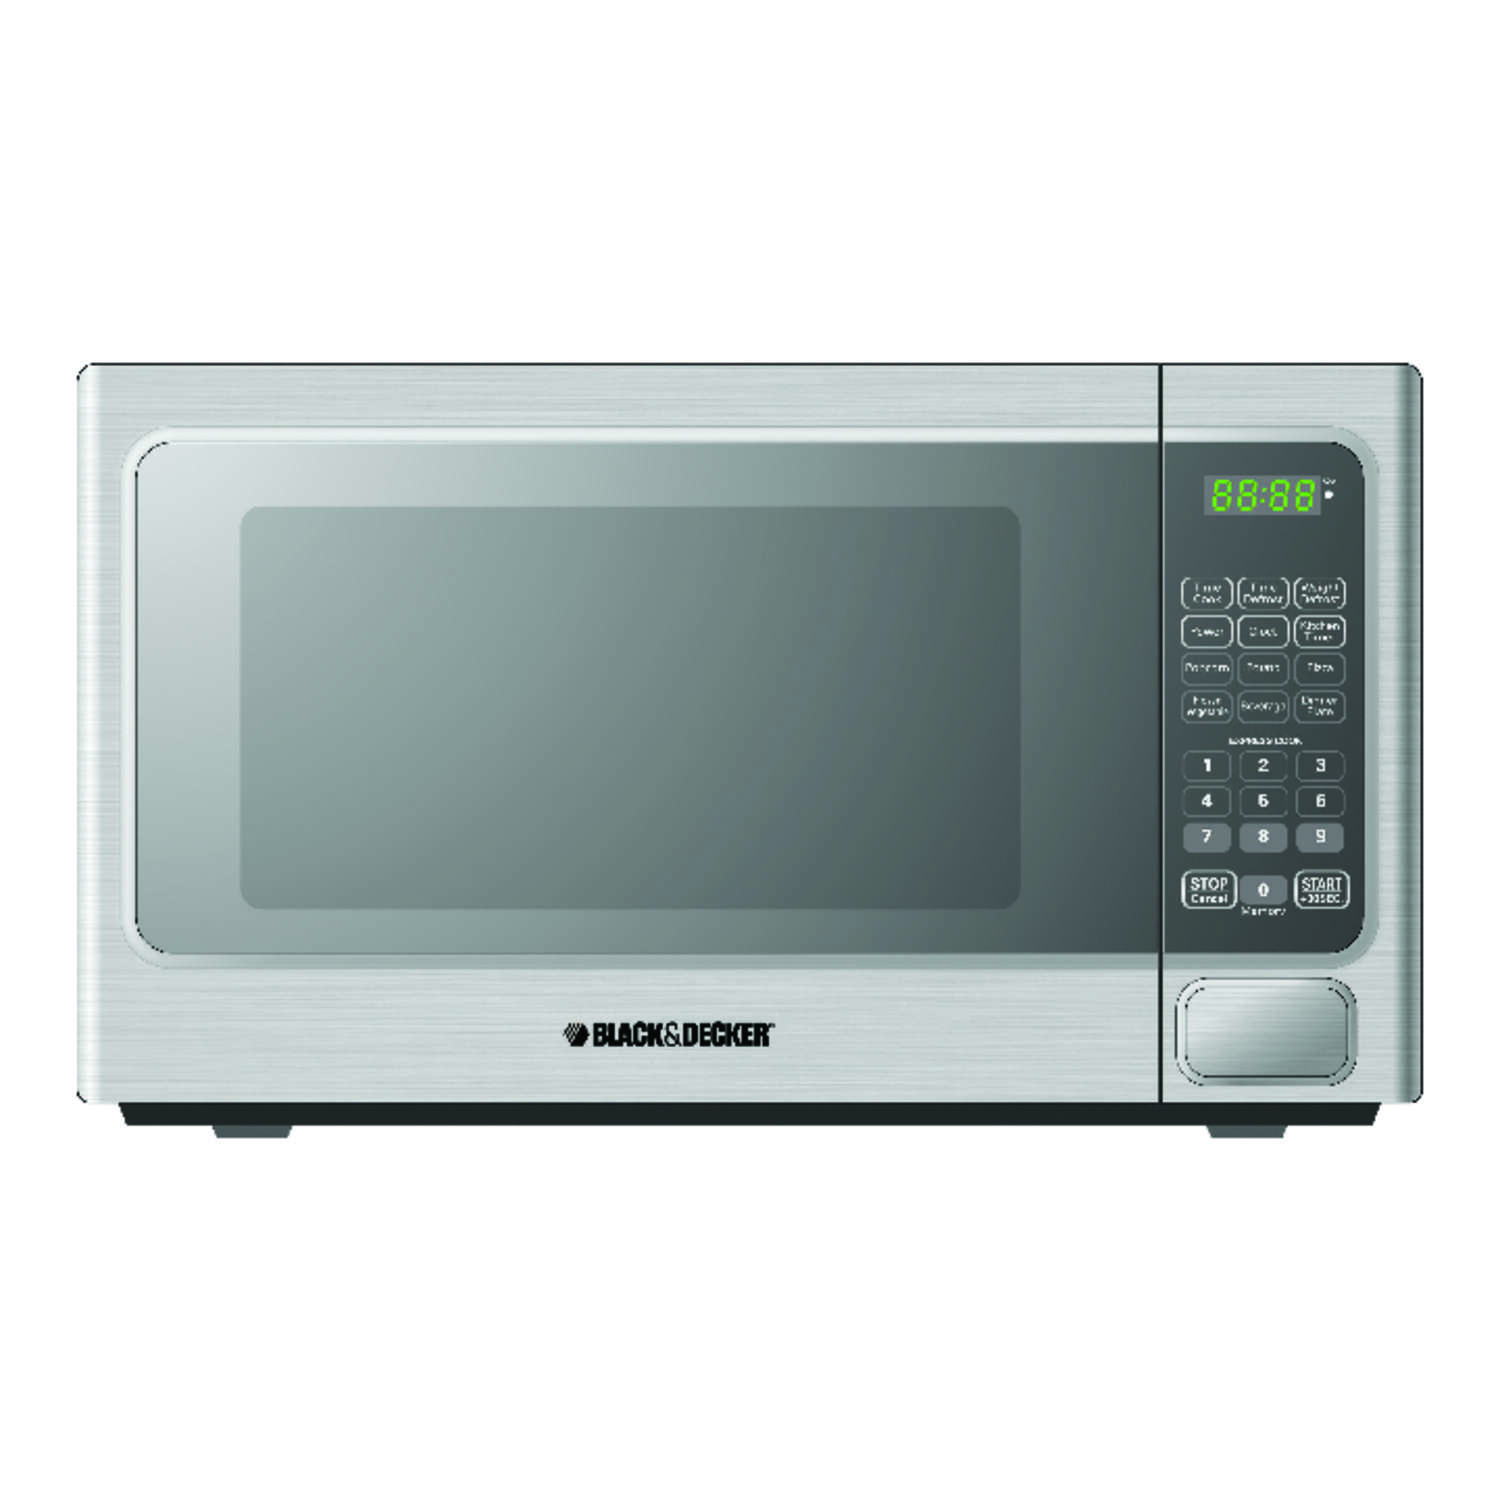 Black and Decker  1.1 cu. ft. Metallic  Microwave  1000 watt